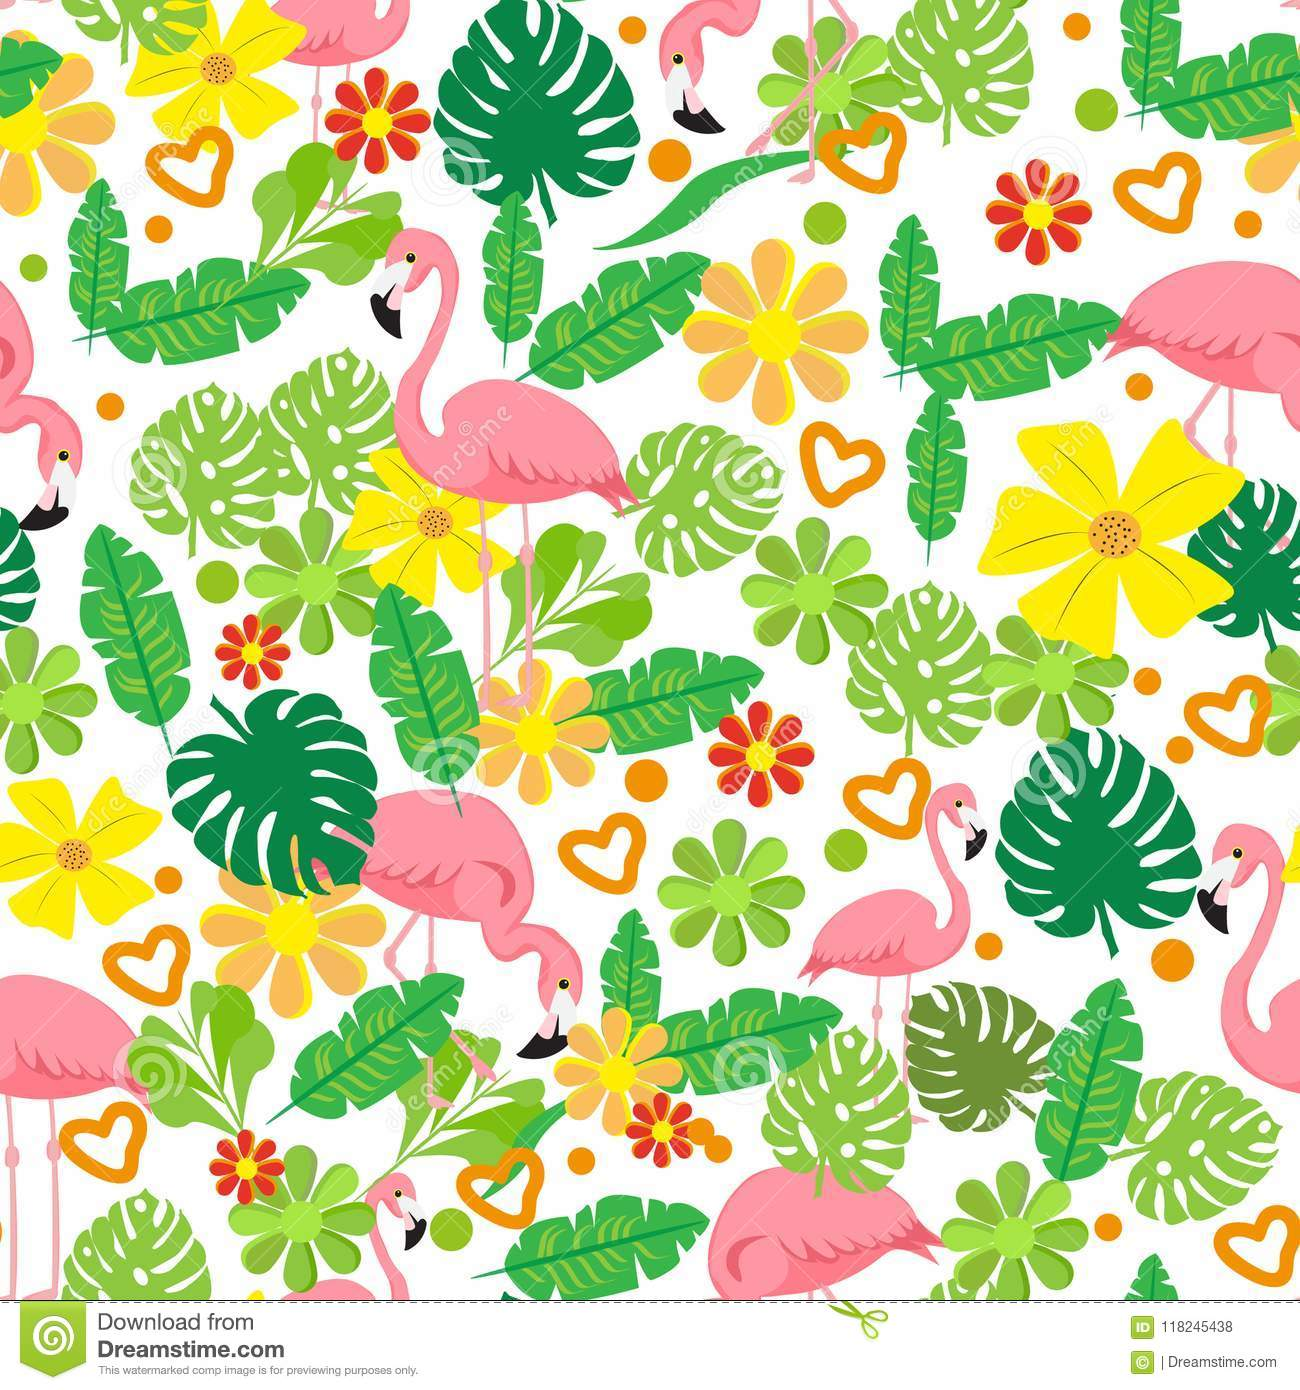 Seamless summer tropical pattern with flamingo, exotic flowers, leaves vector background. Good for wallpapers, web page background